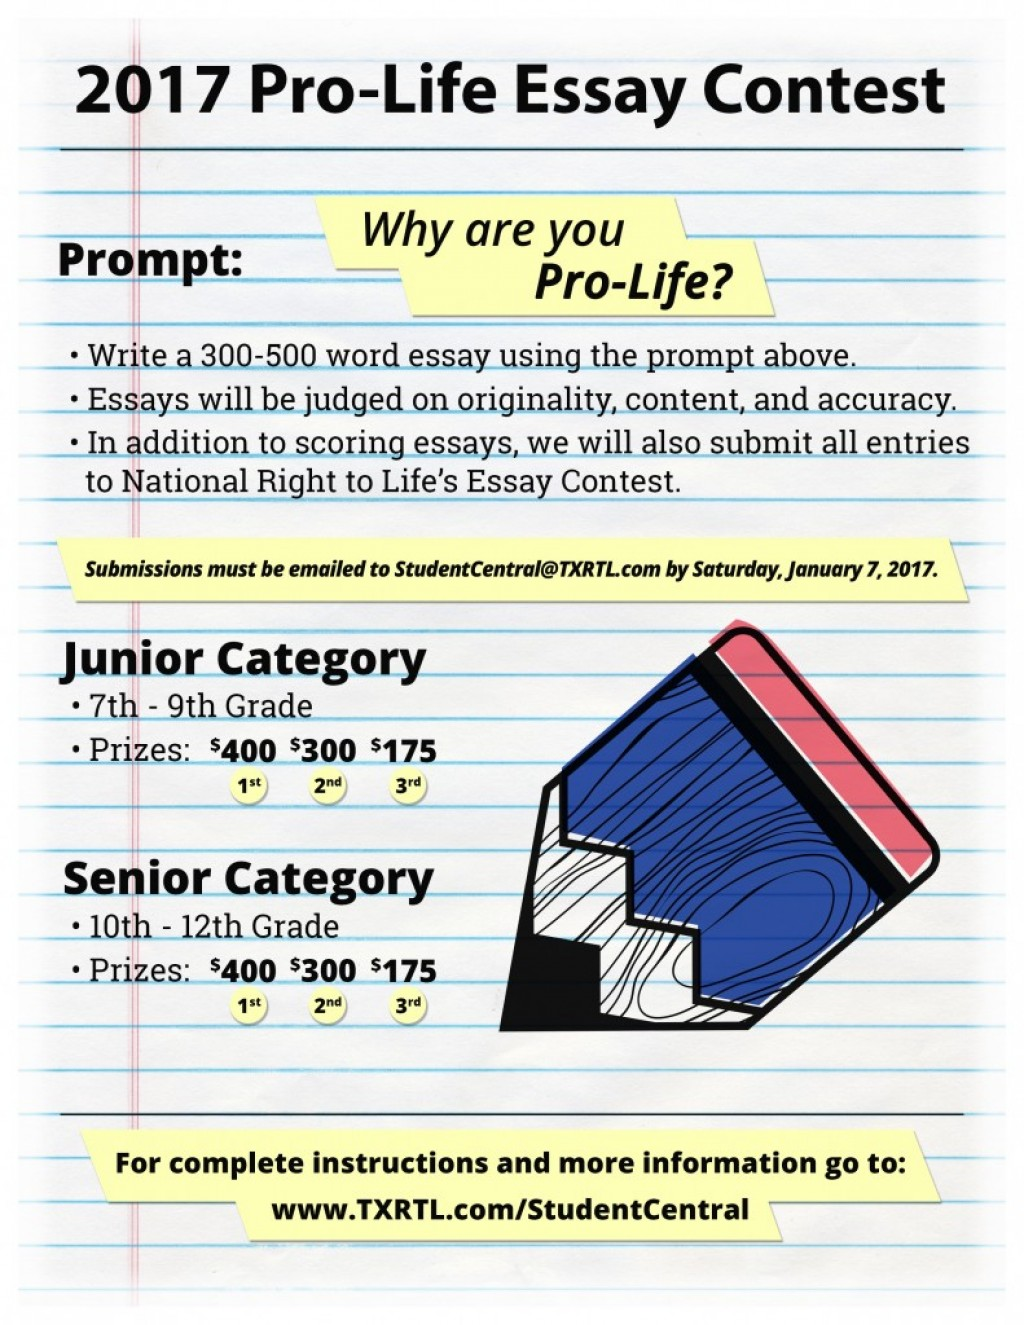 008 Essay Example Pro Life Contest Staggering 2017 Online Competition India Writing High School Optimist International Large